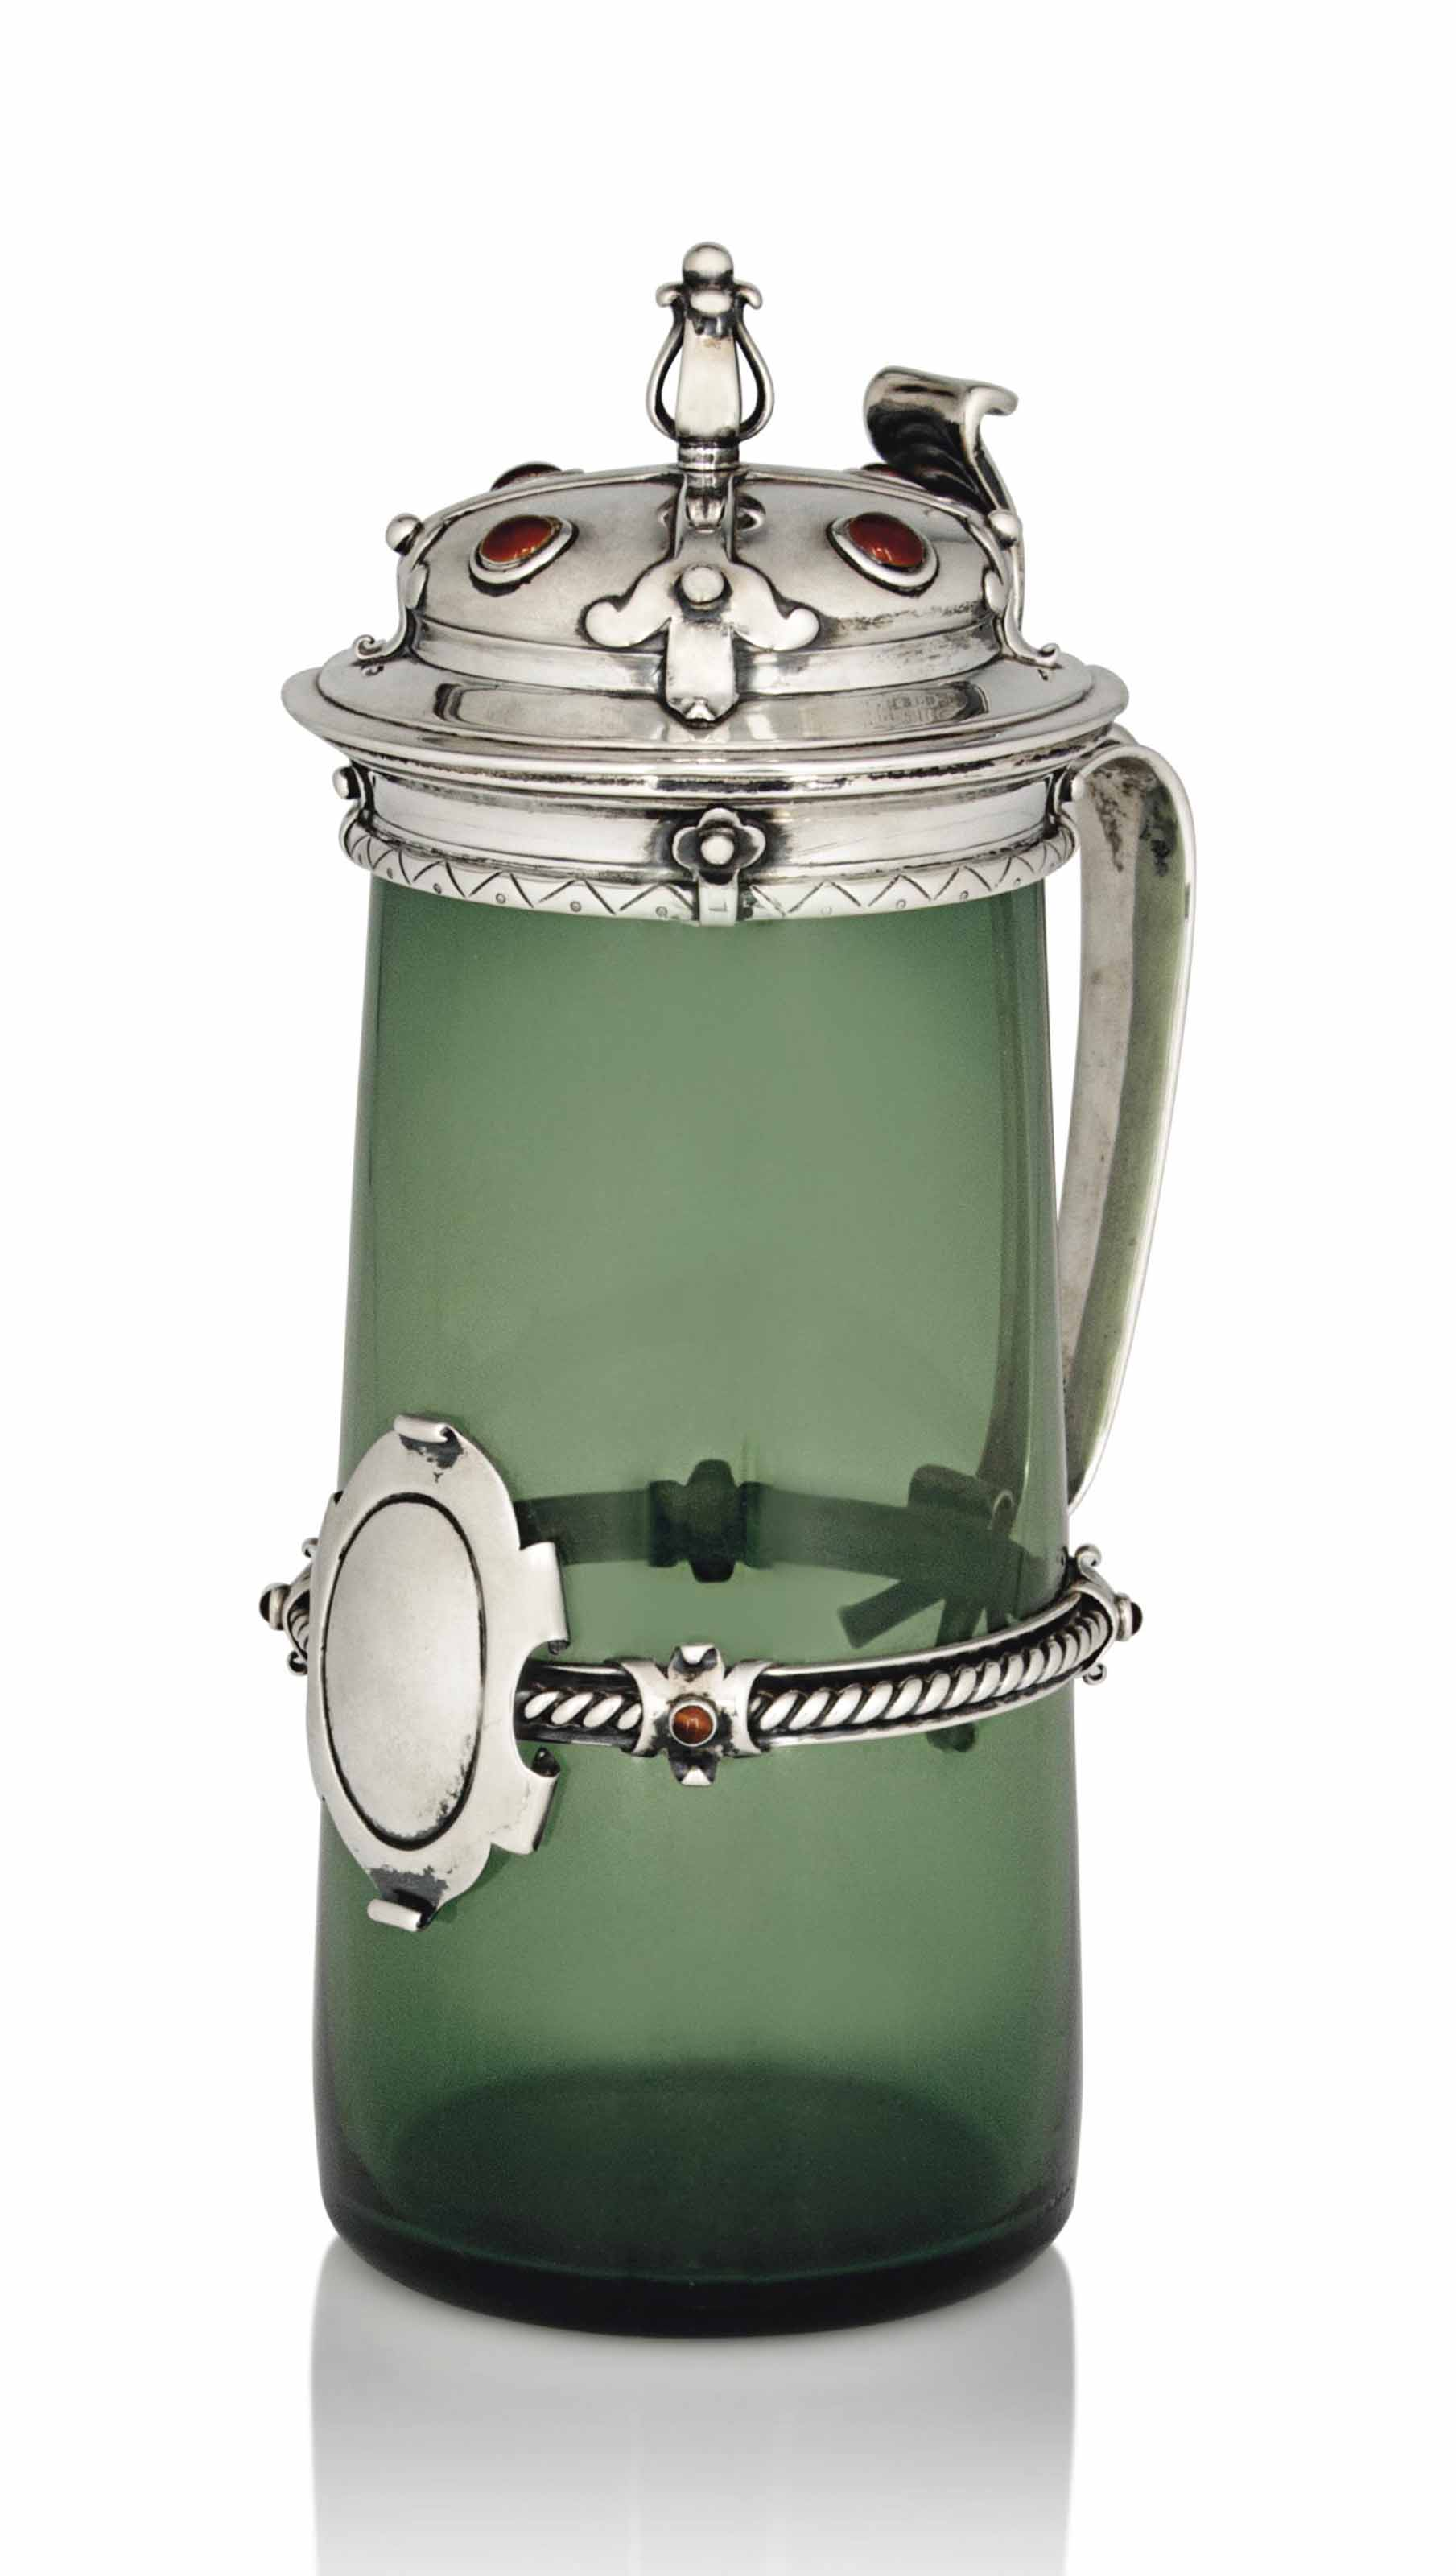 AN ARTS & CRAFTS SILVER, GLASS AND ENAMEL TANKARD ATTRIBUTED TO JOHNSON WAKER & TOLHURST